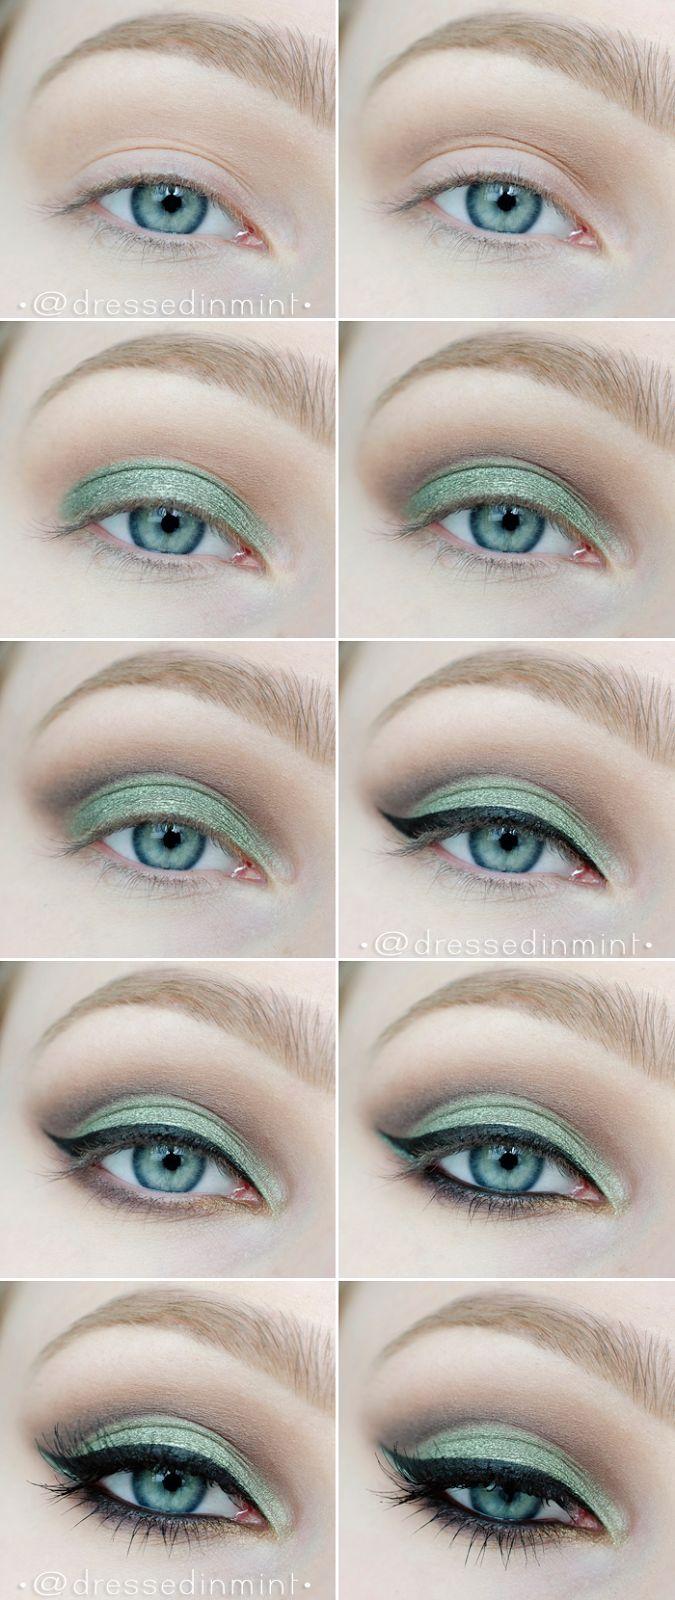 Dressed in Mint: make up. - GREEN cut crease / step by step